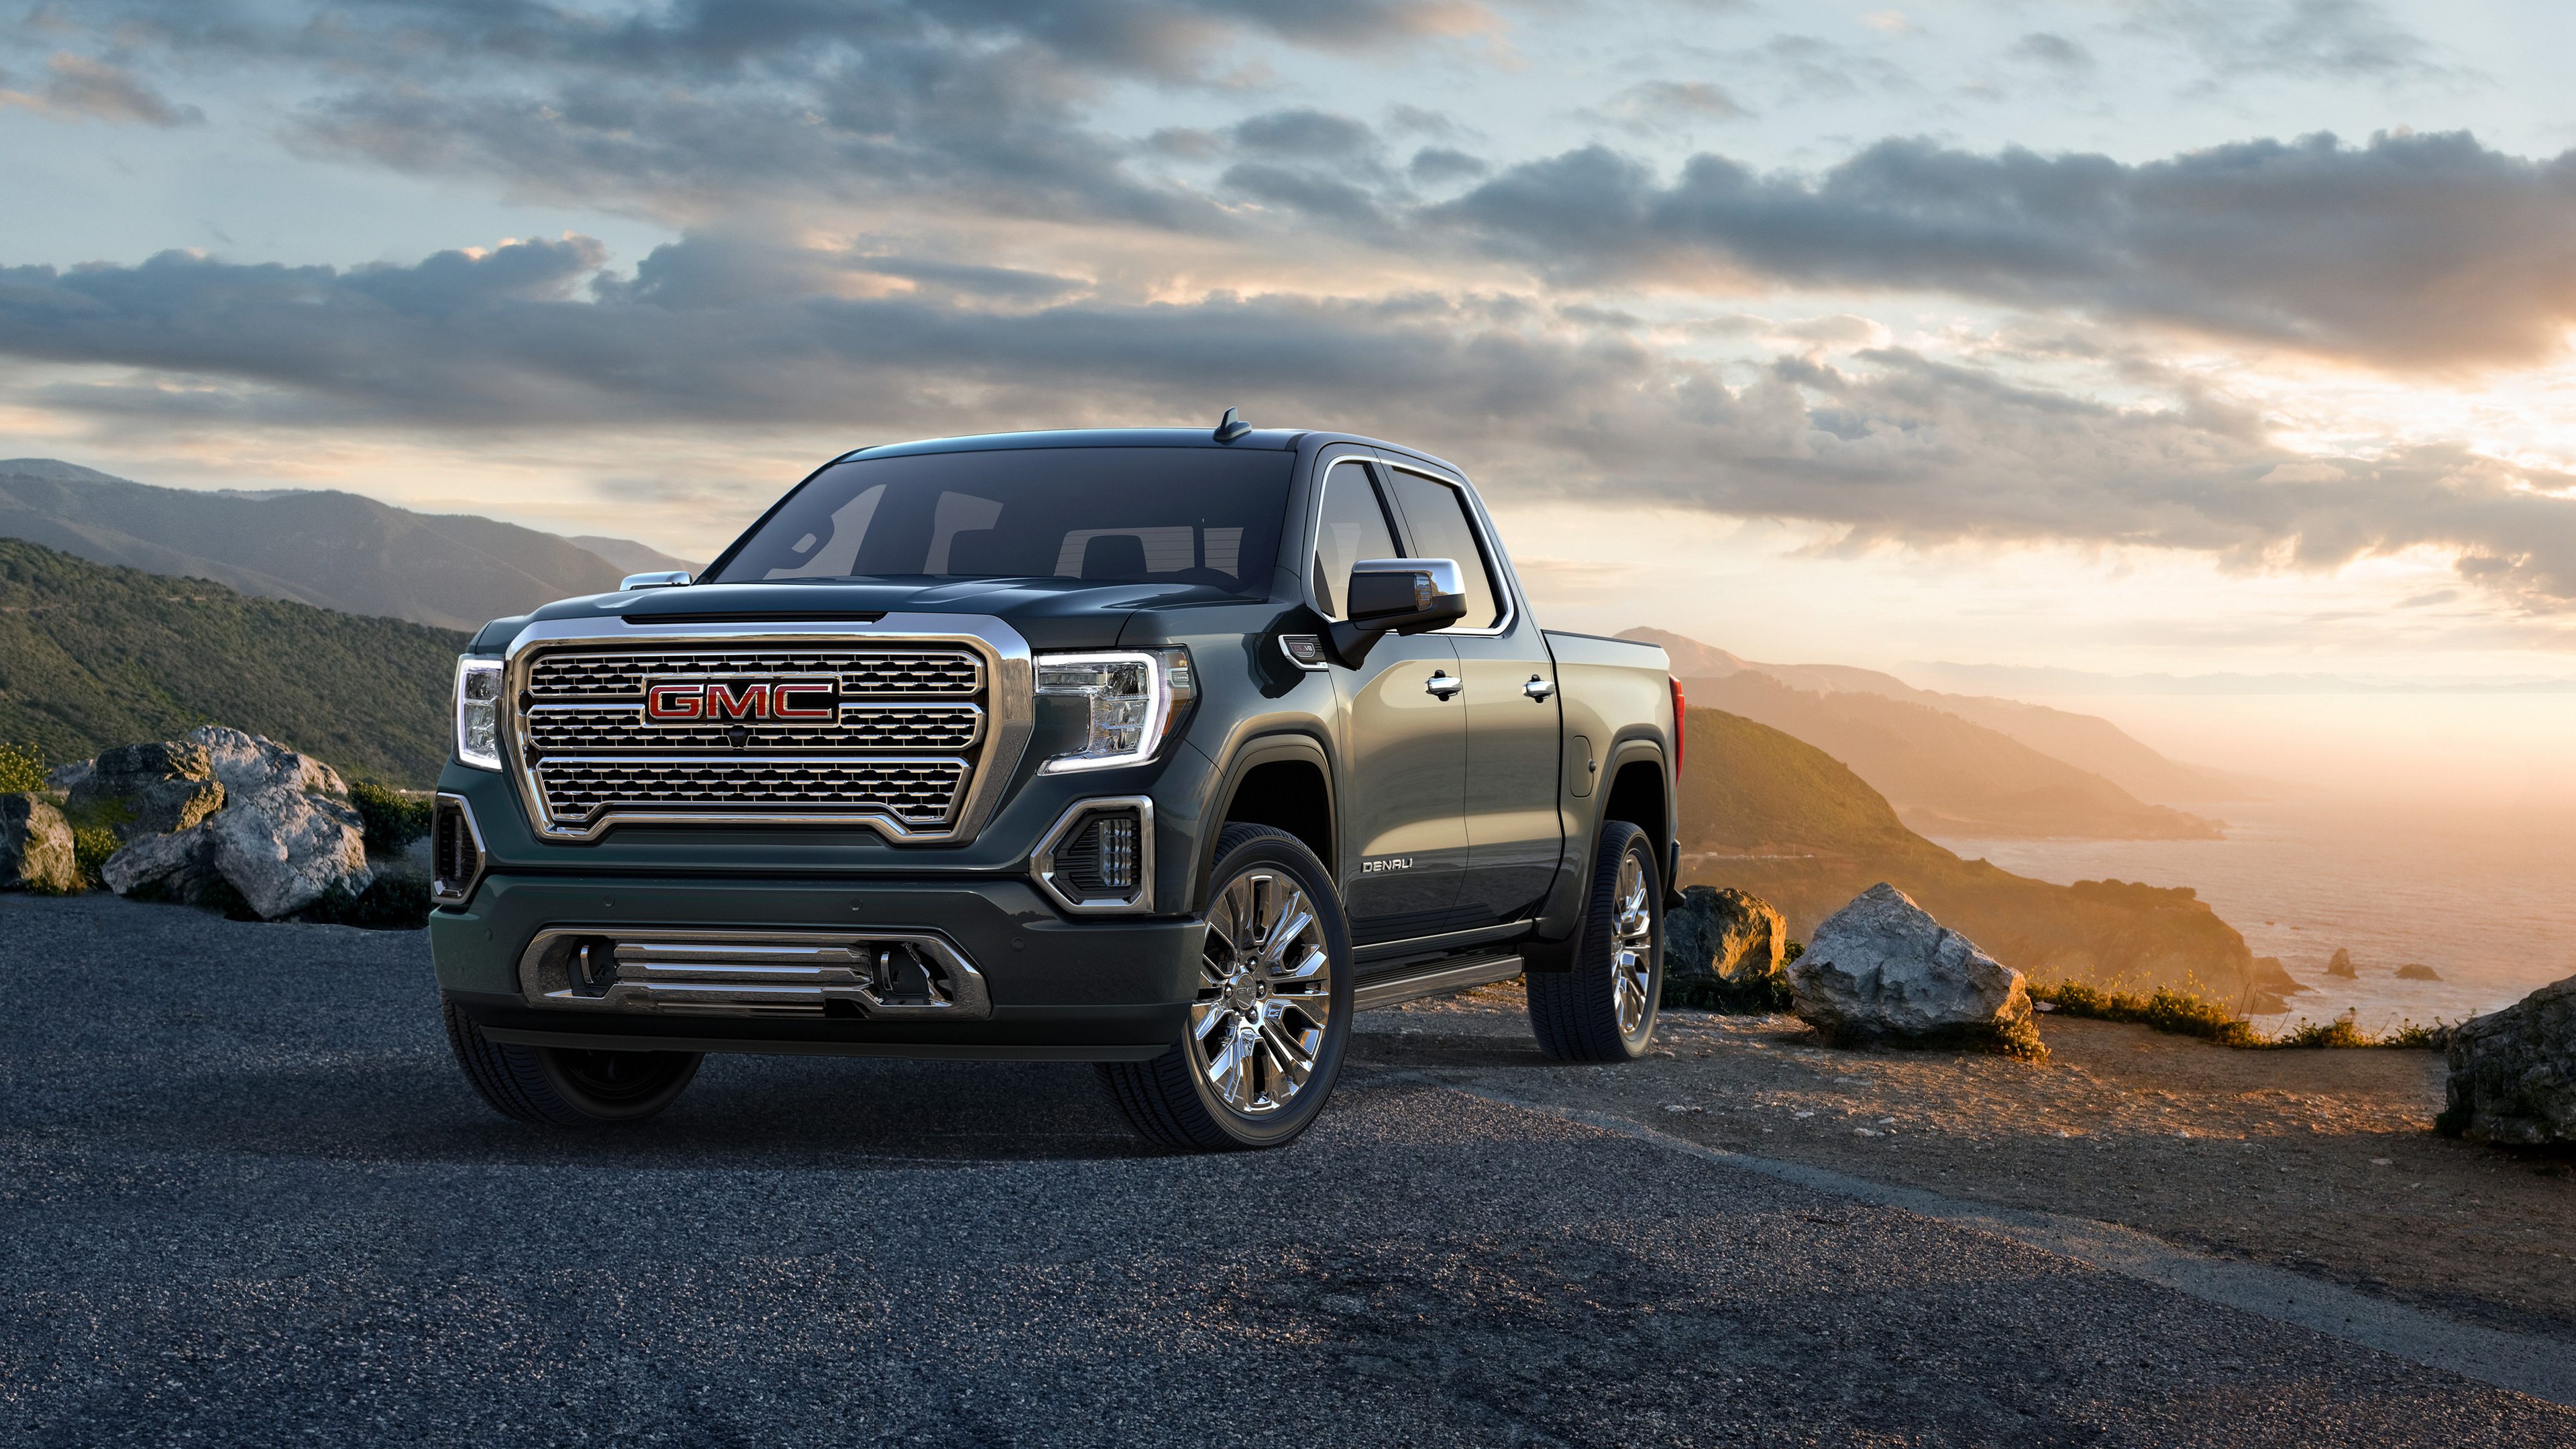 2019 gmc sierra 4k 1539110051 - 2019 GMC Sierra 4k - hd-wallpapers, gmc wallpapers, gmc sierra wallpapers, cars wallpapers, 4k-wallpapers, 2019 cars wallpapers